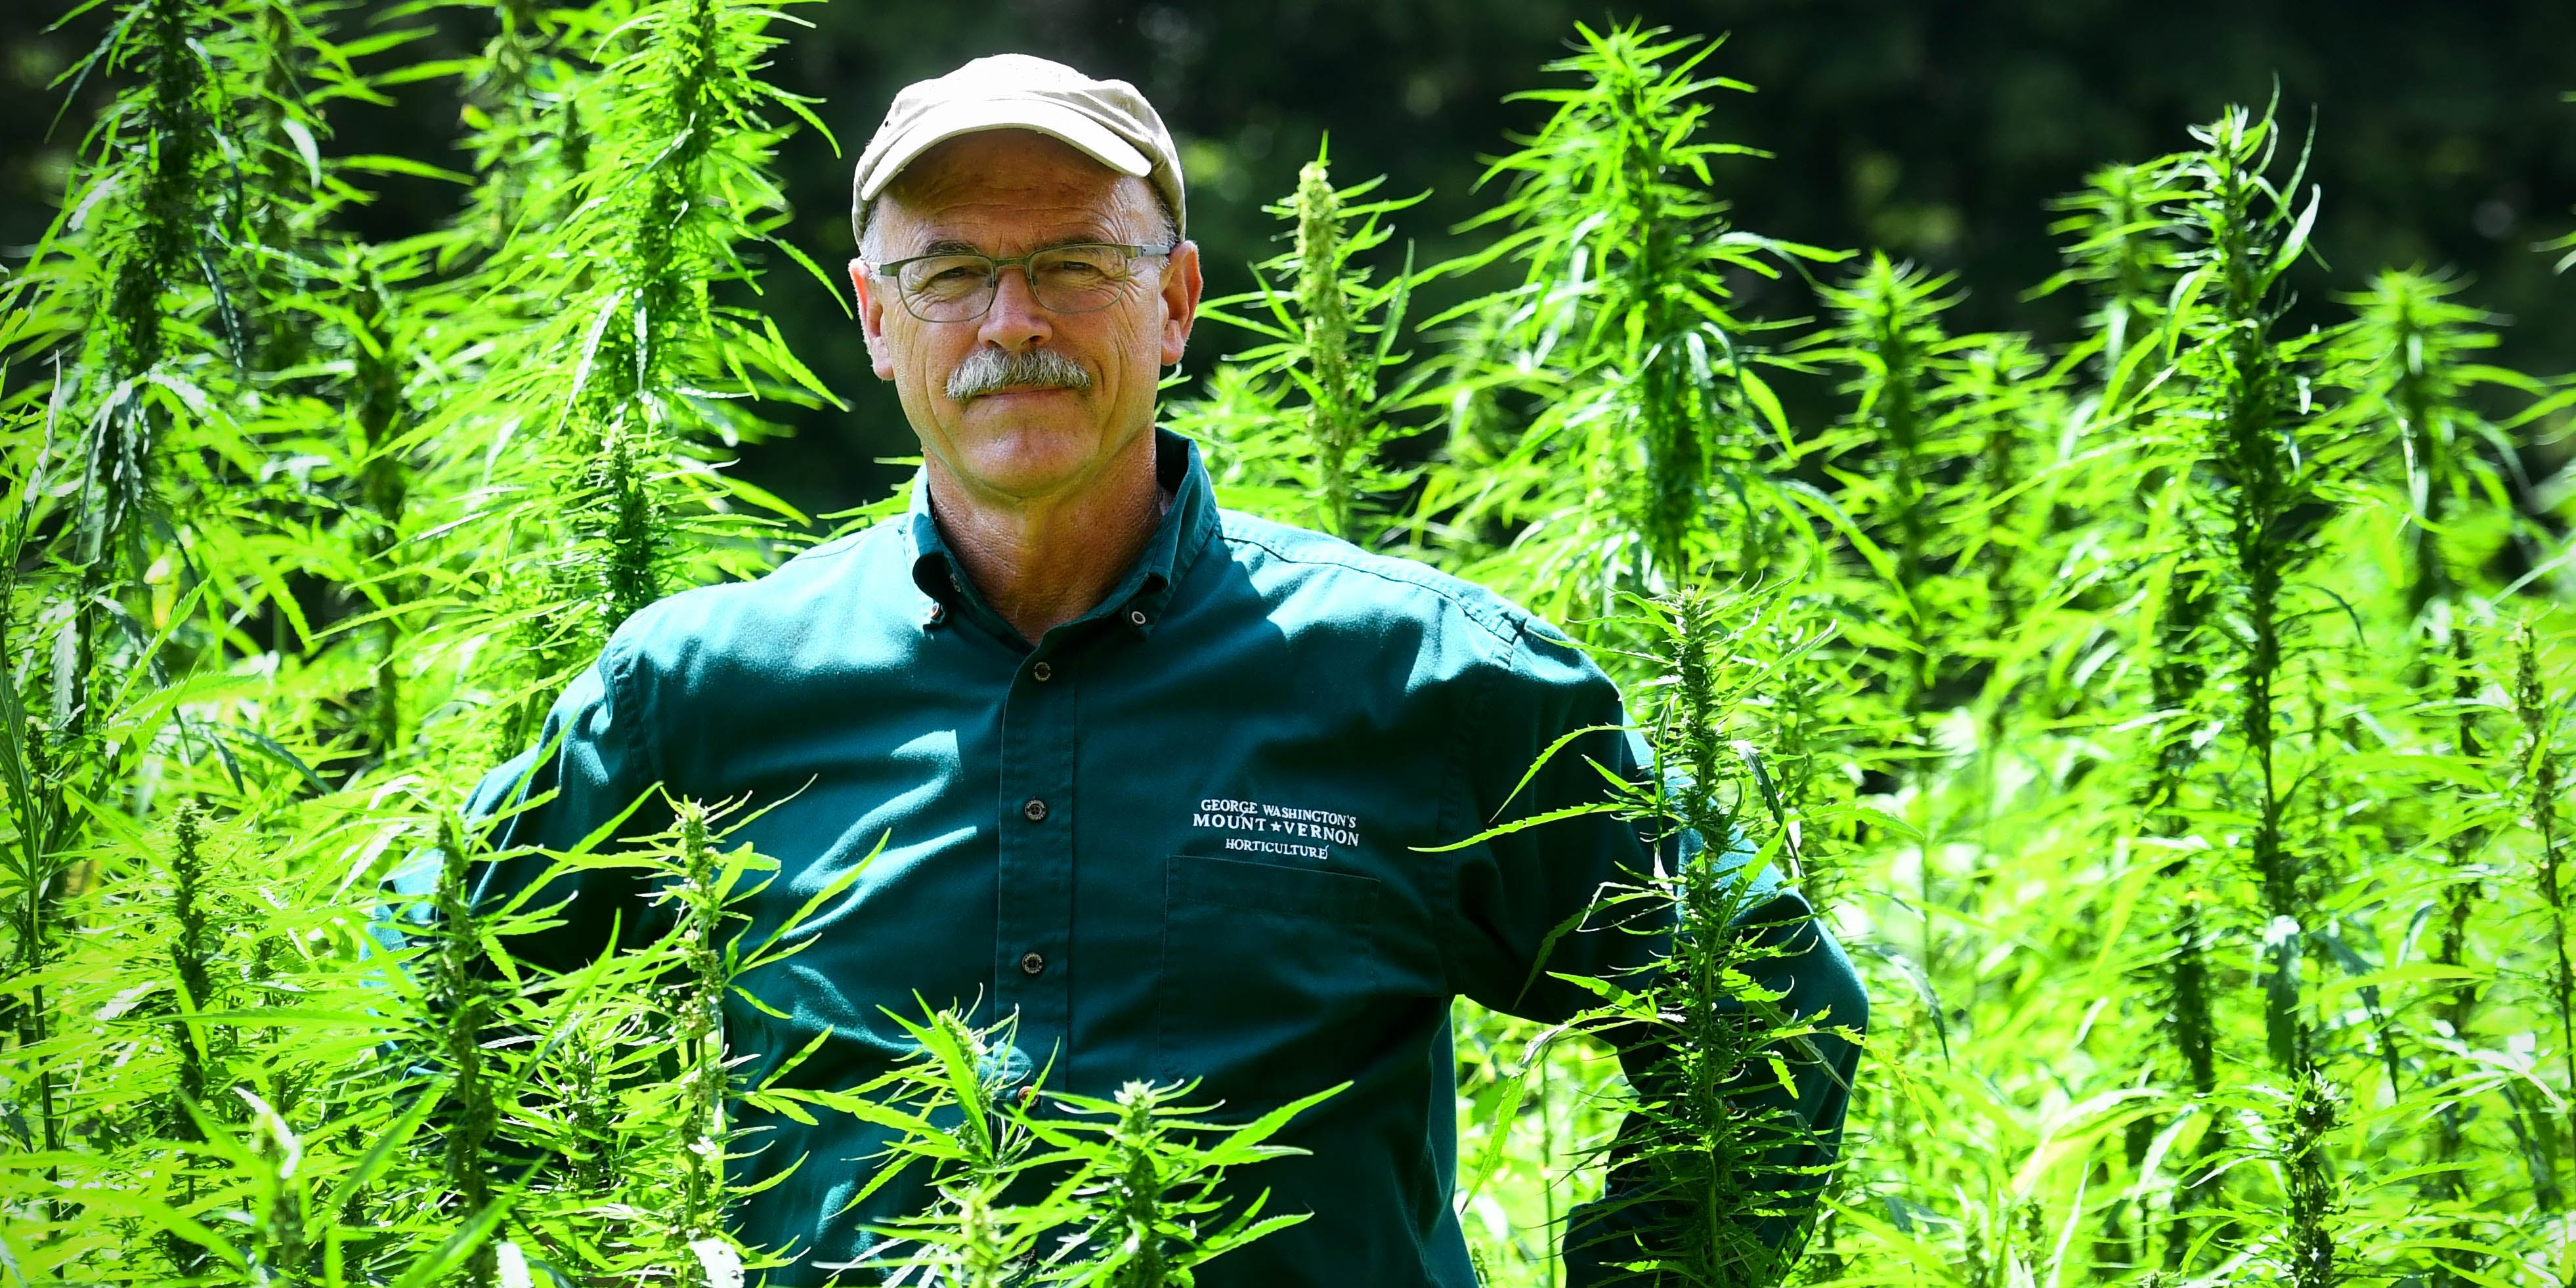 ALEXANDRIA, VA - JULY 26: Mount Vernon Director of Horticulture, Dean Norton, talks about the estate's newest crop, hemp, as he stands amid the budding plants on July 26, 2018 in Alexandria, VA. (Photo by Katherine Frey/The Washington Post via Getty Images)